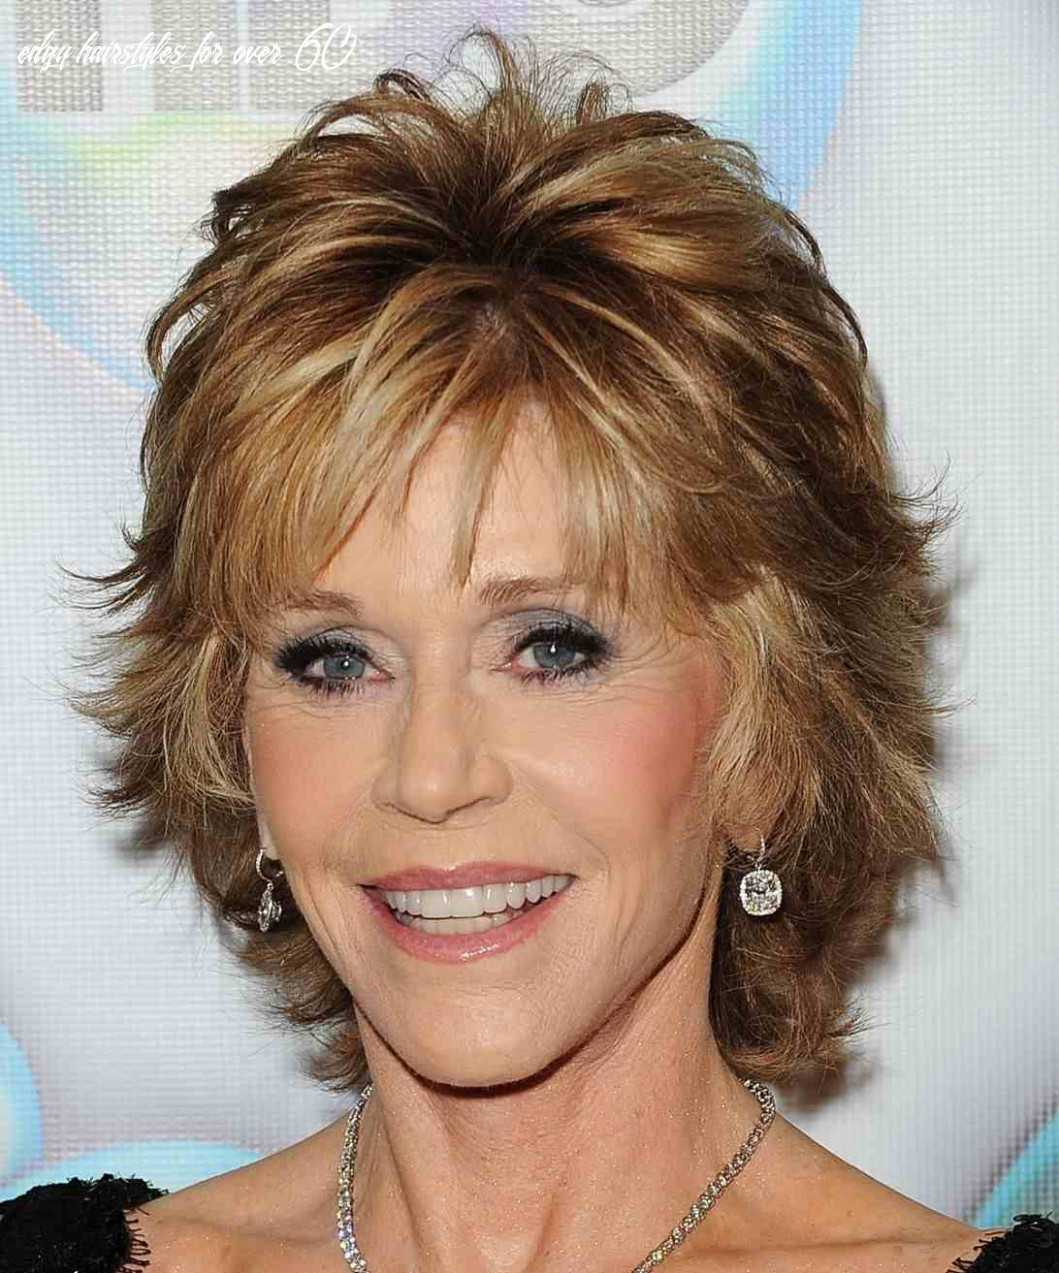 12 must try hairstyles for women over 12 | 12retirees edgy hairstyles for over 60